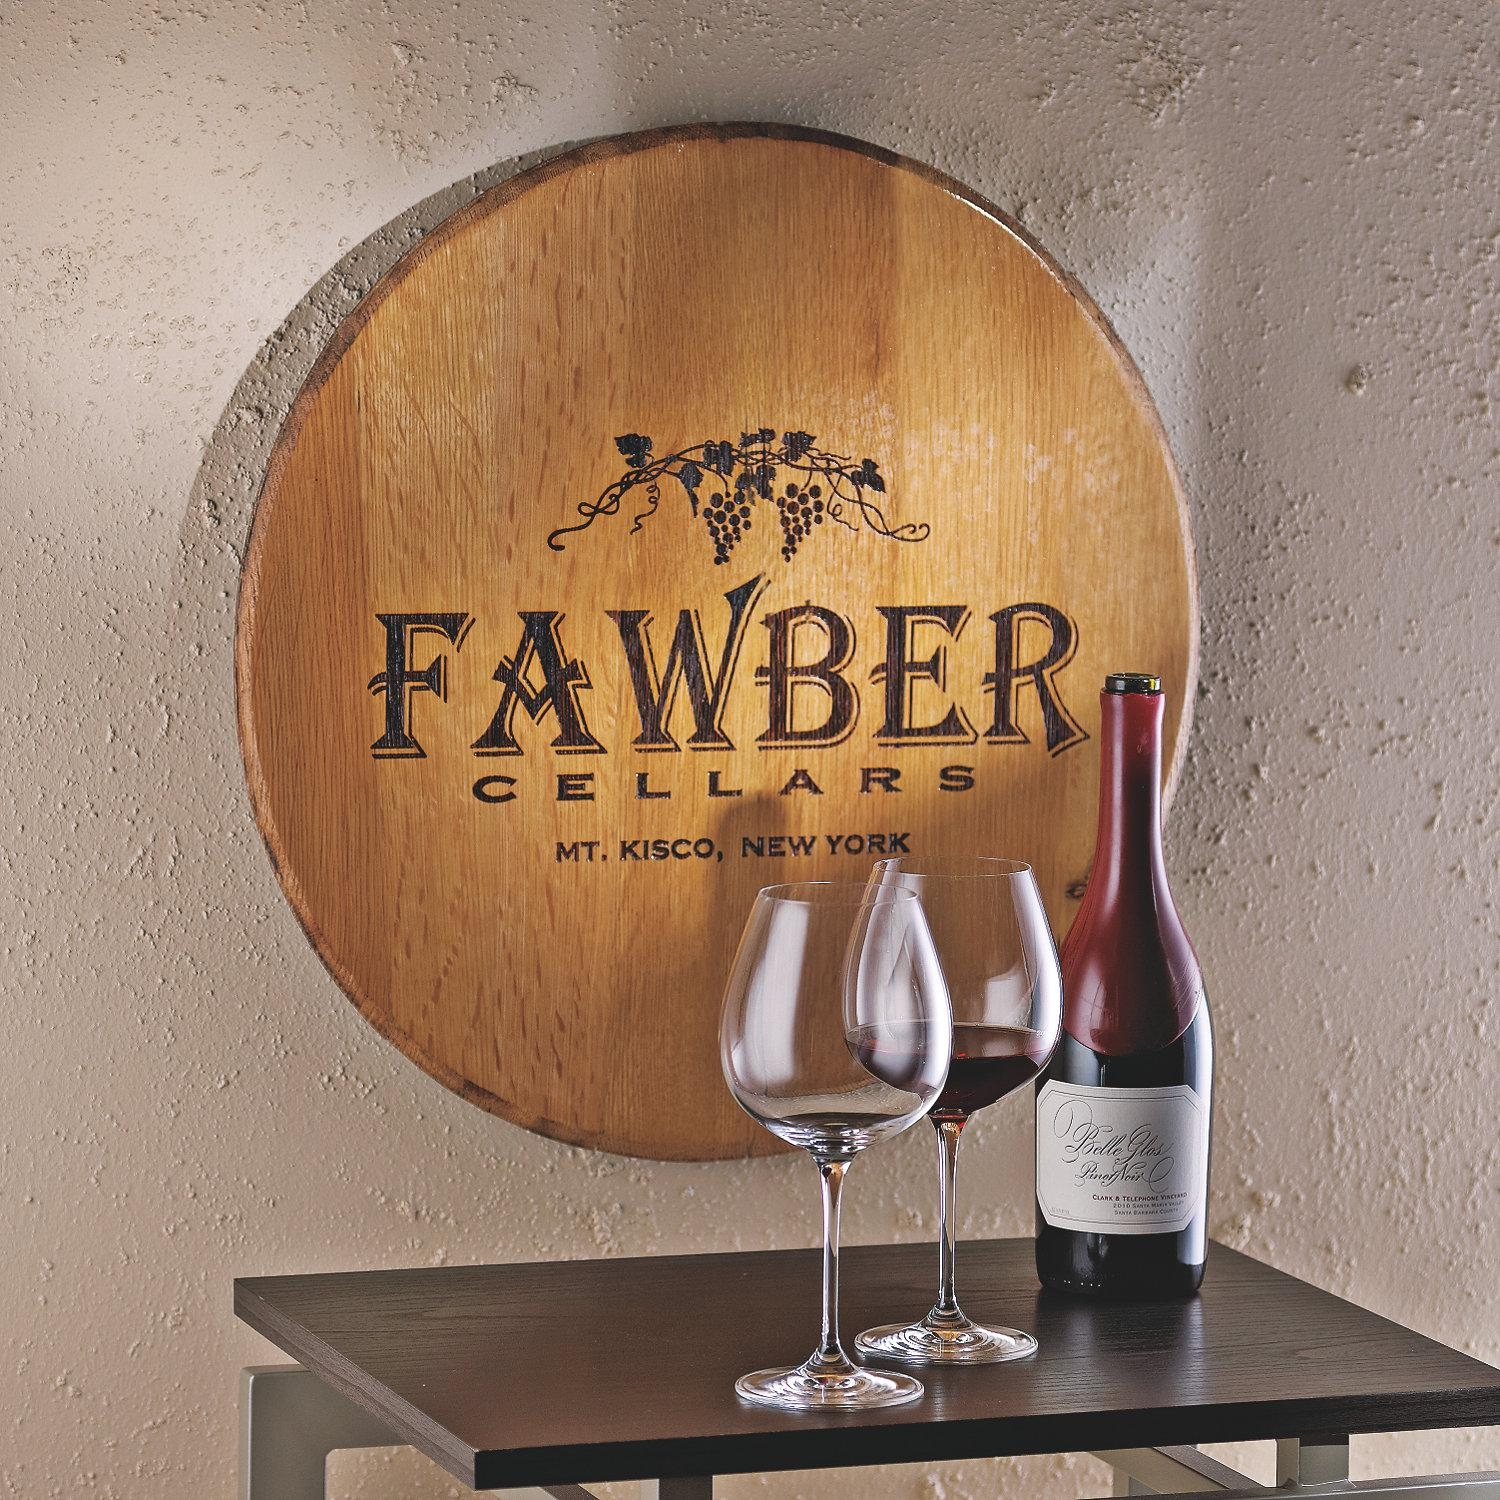 Personalized Signs & Wall Décor | Personalized Décor | Housewares In Wine Barrel Wall Art (View 17 of 20)